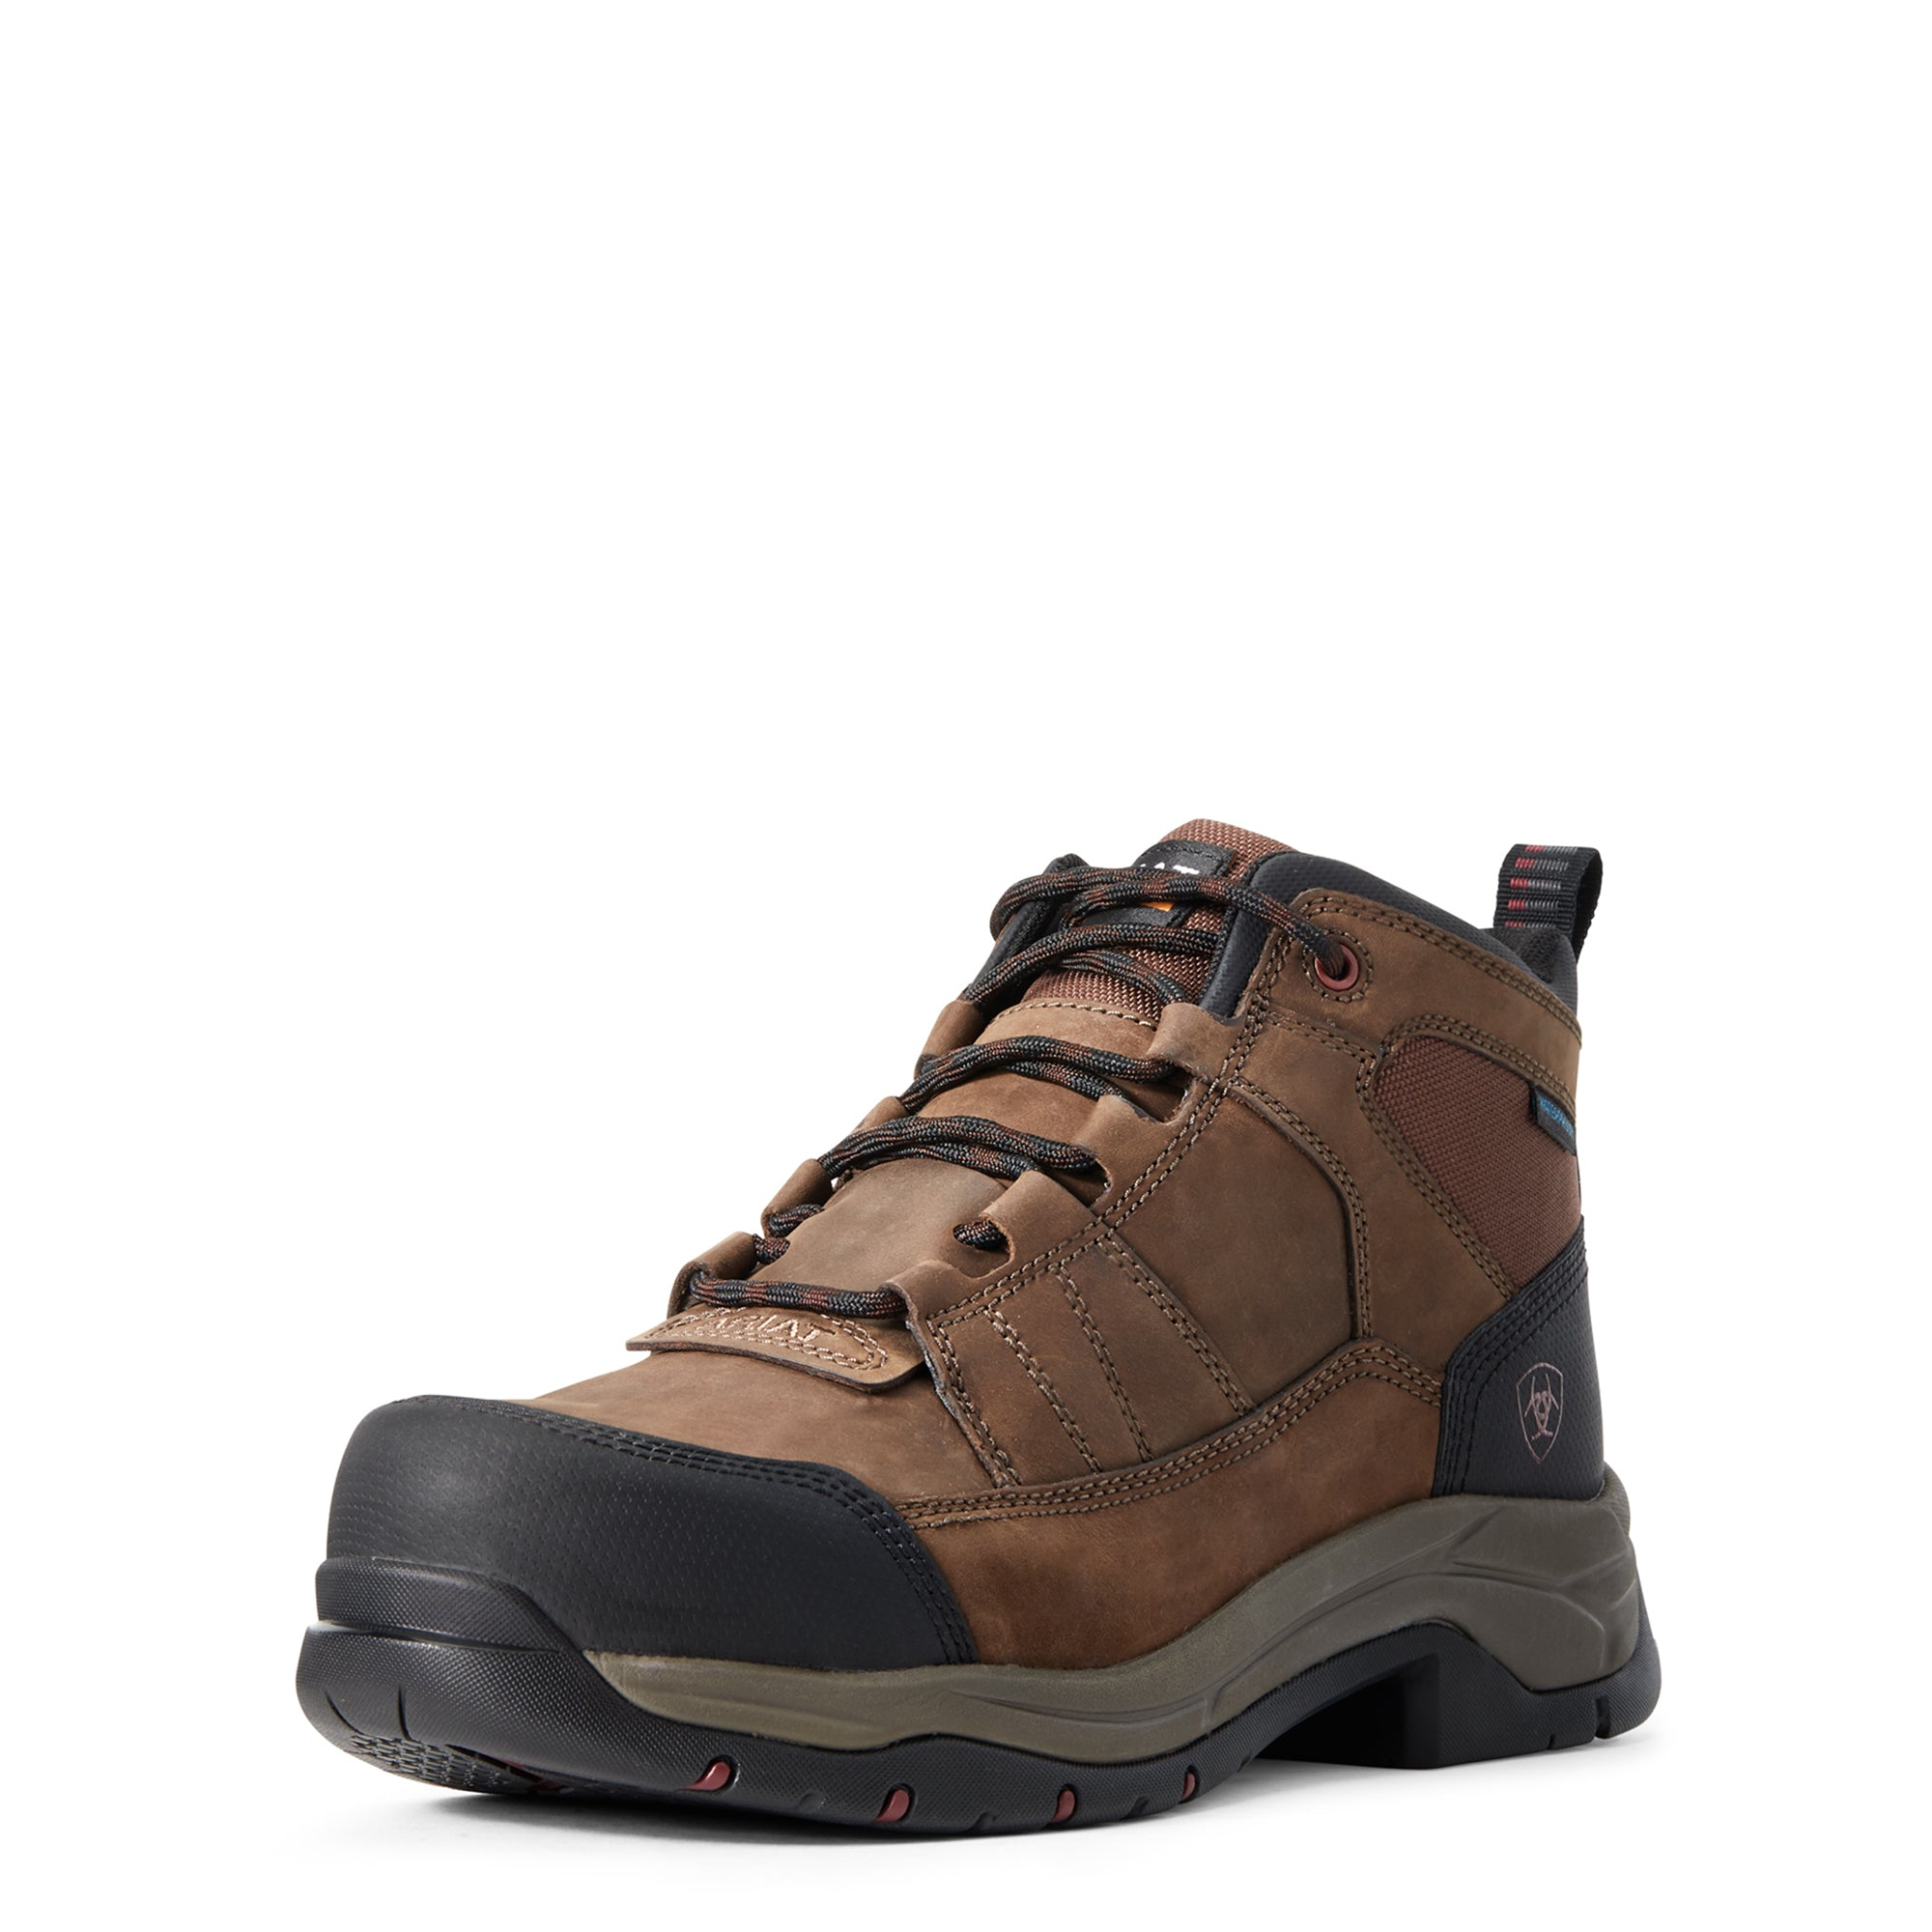 'Ariat' 10029531 - Men's Telluride Work Comp Toe / WP - Brown